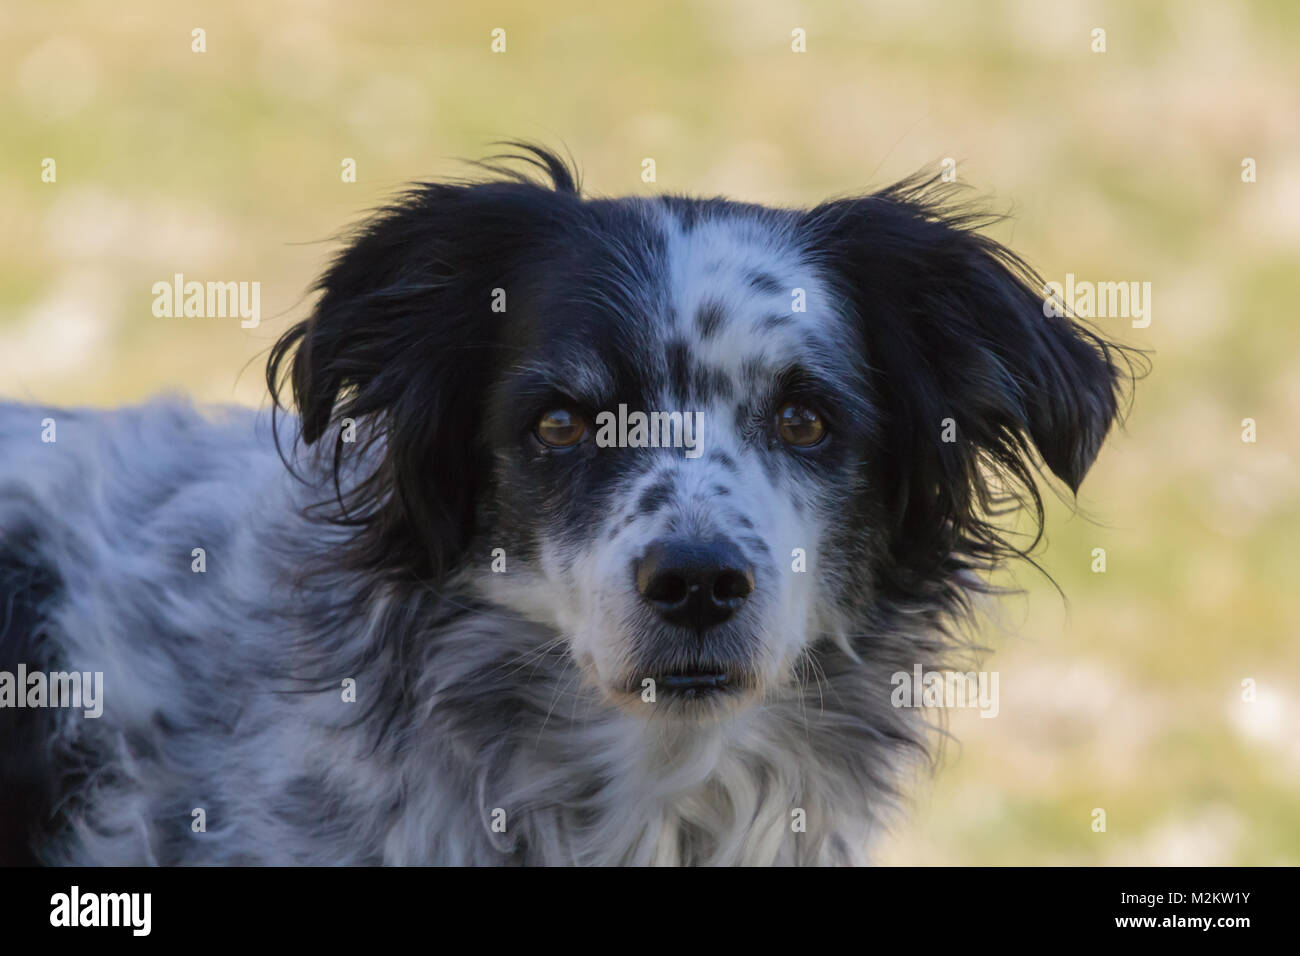 Dog, Canis lupus familiaris, Springer Spaniel Cross,  Adult Male Dog, Taken January 2018 in Almeria Province Andalucia - Stock Image